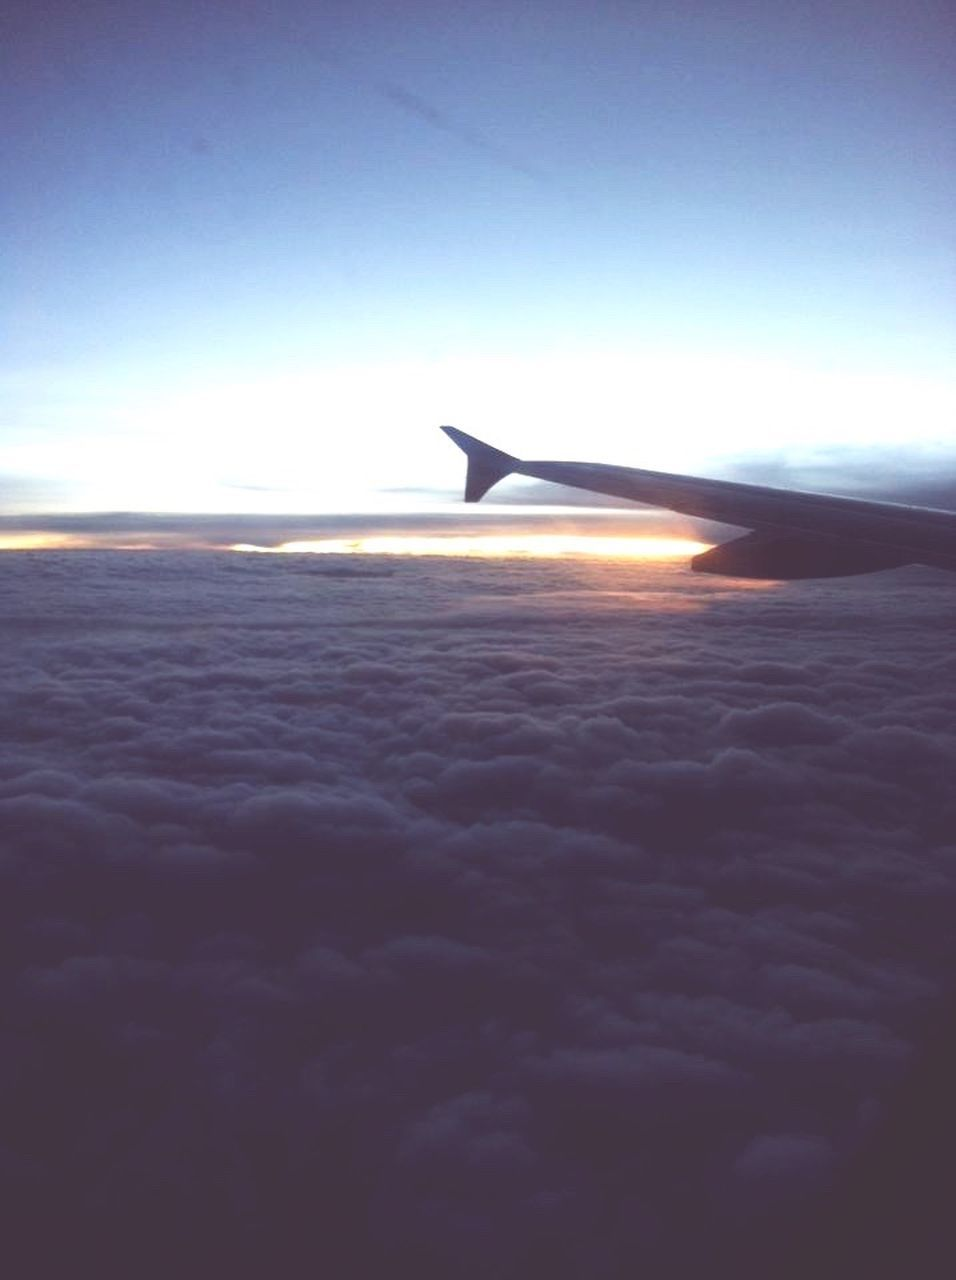 airplane, transportation, airplane wing, sky, cloud - sky, nature, aerial view, journey, beauty in nature, scenics, travel, no people, sunset, air vehicle, mode of transport, sea, tranquility, flying, mid-air, outdoors, aircraft wing, blue, day, the natural world, water, horizon over water